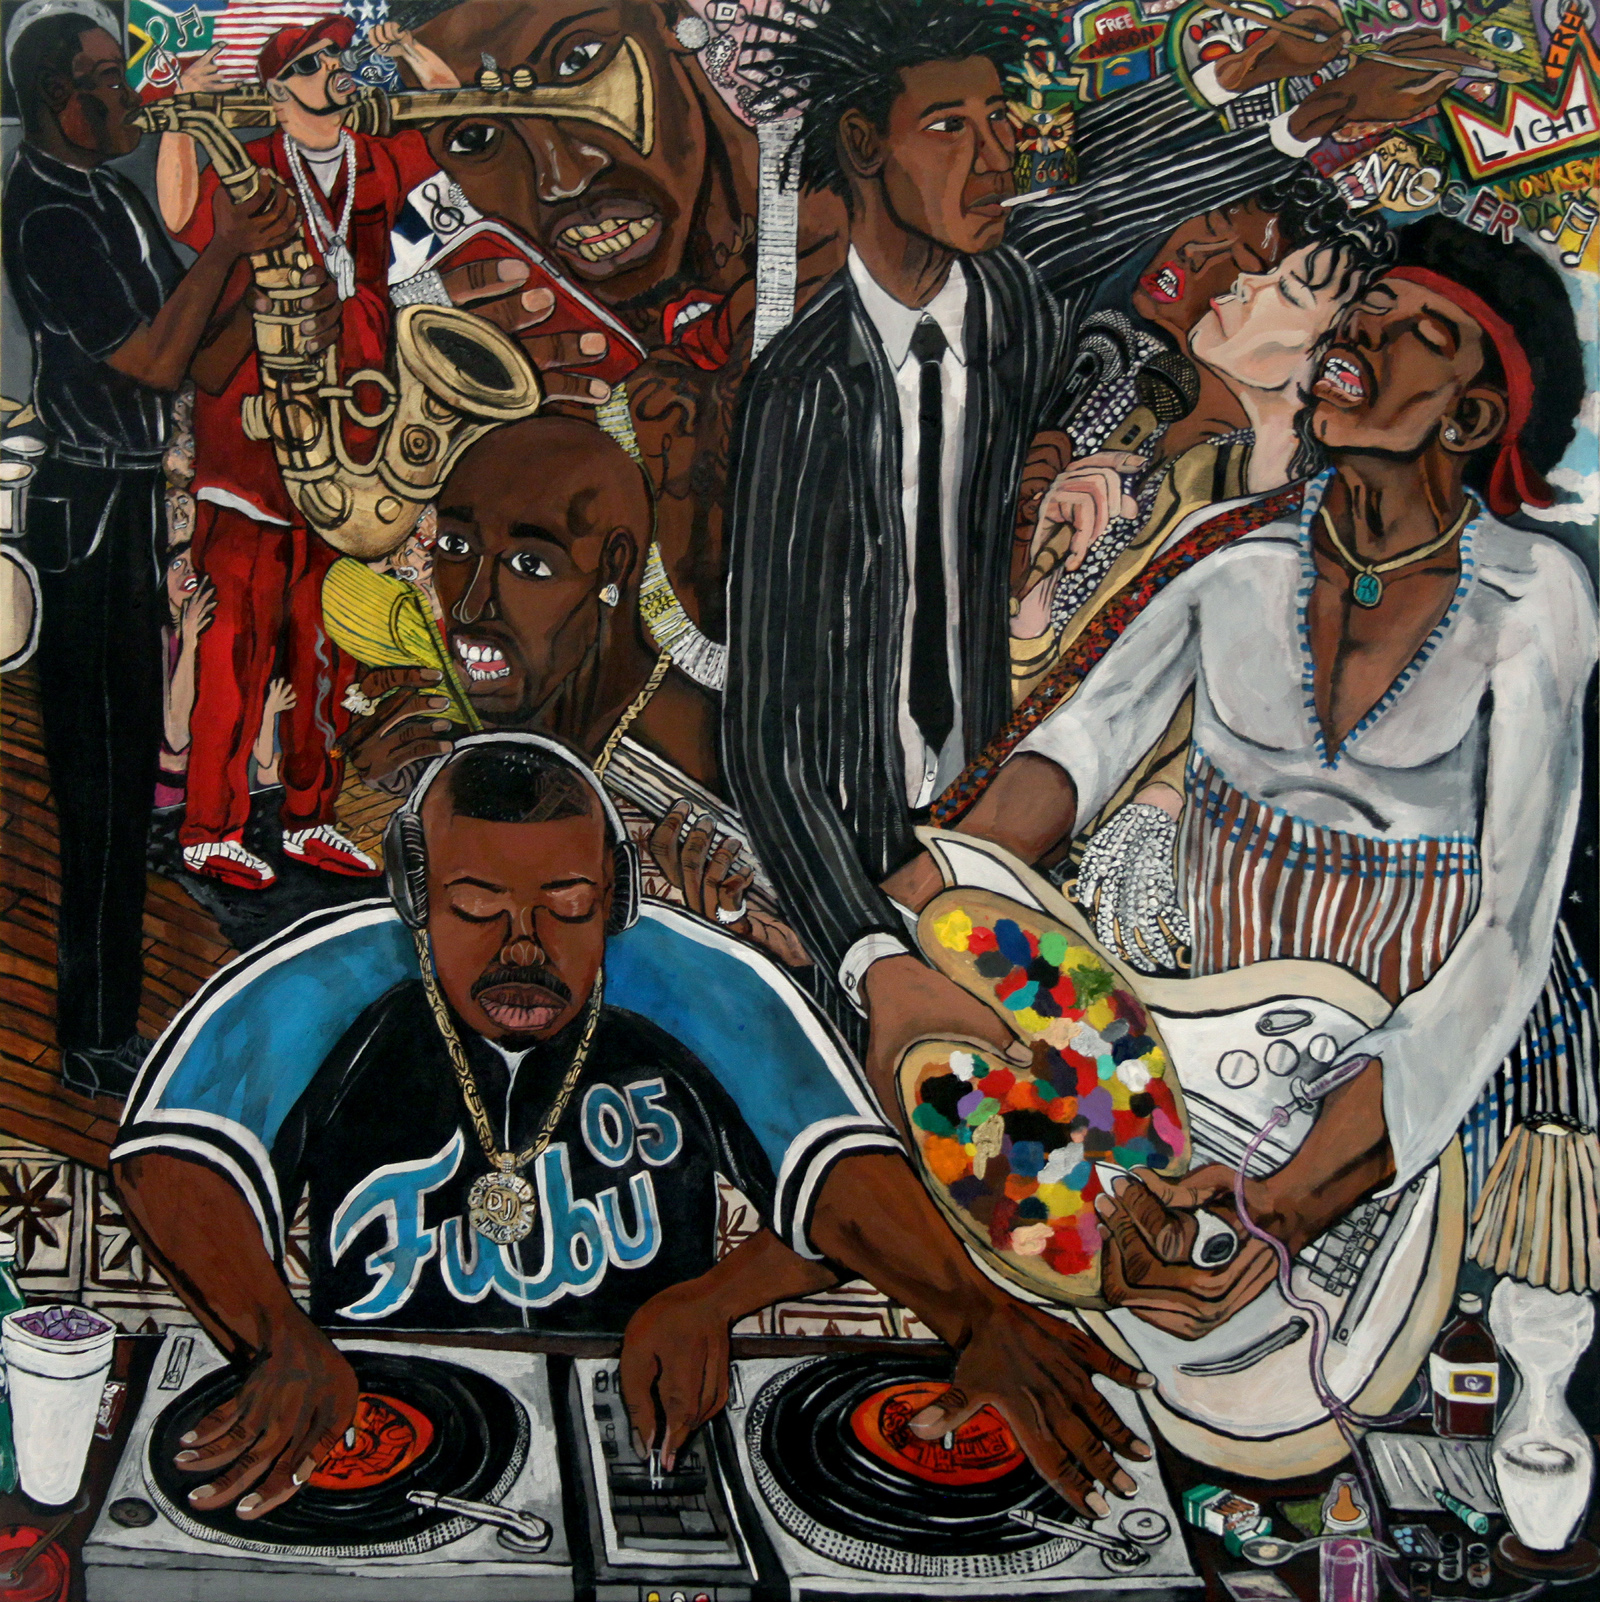 El Franco Lee, Rockstar Living, 2014, acrylic on canvas, 2 X 40 X 40 inches